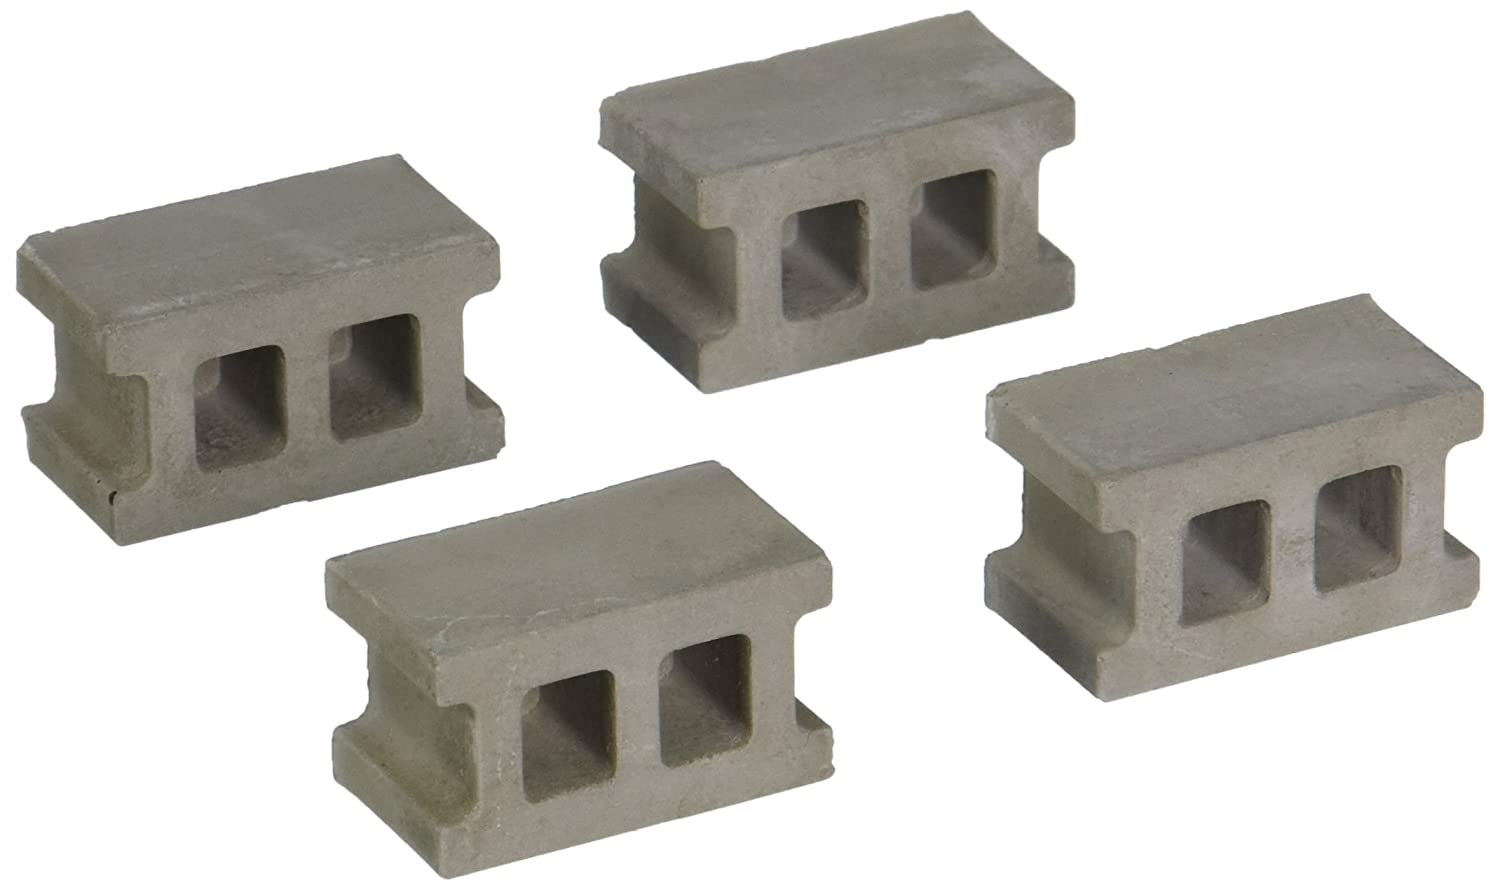 Amazon.com: MollaSpace Concrete Cinder Block Magnets - Made of Real ...